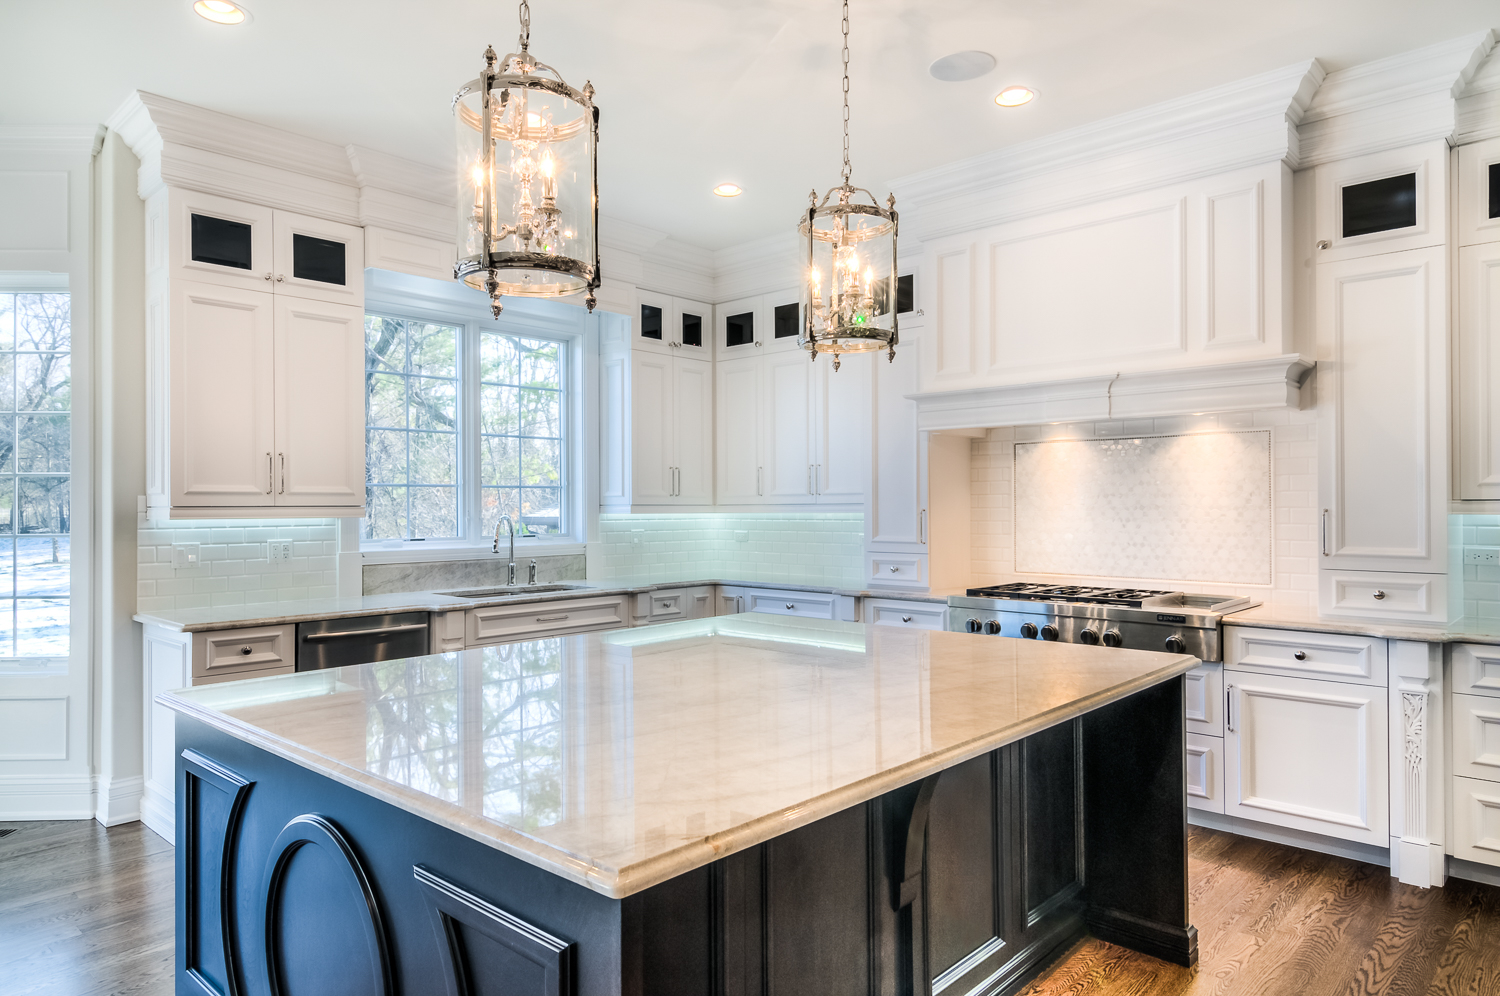 A modern kitchen featuring granite countertops from NEKA